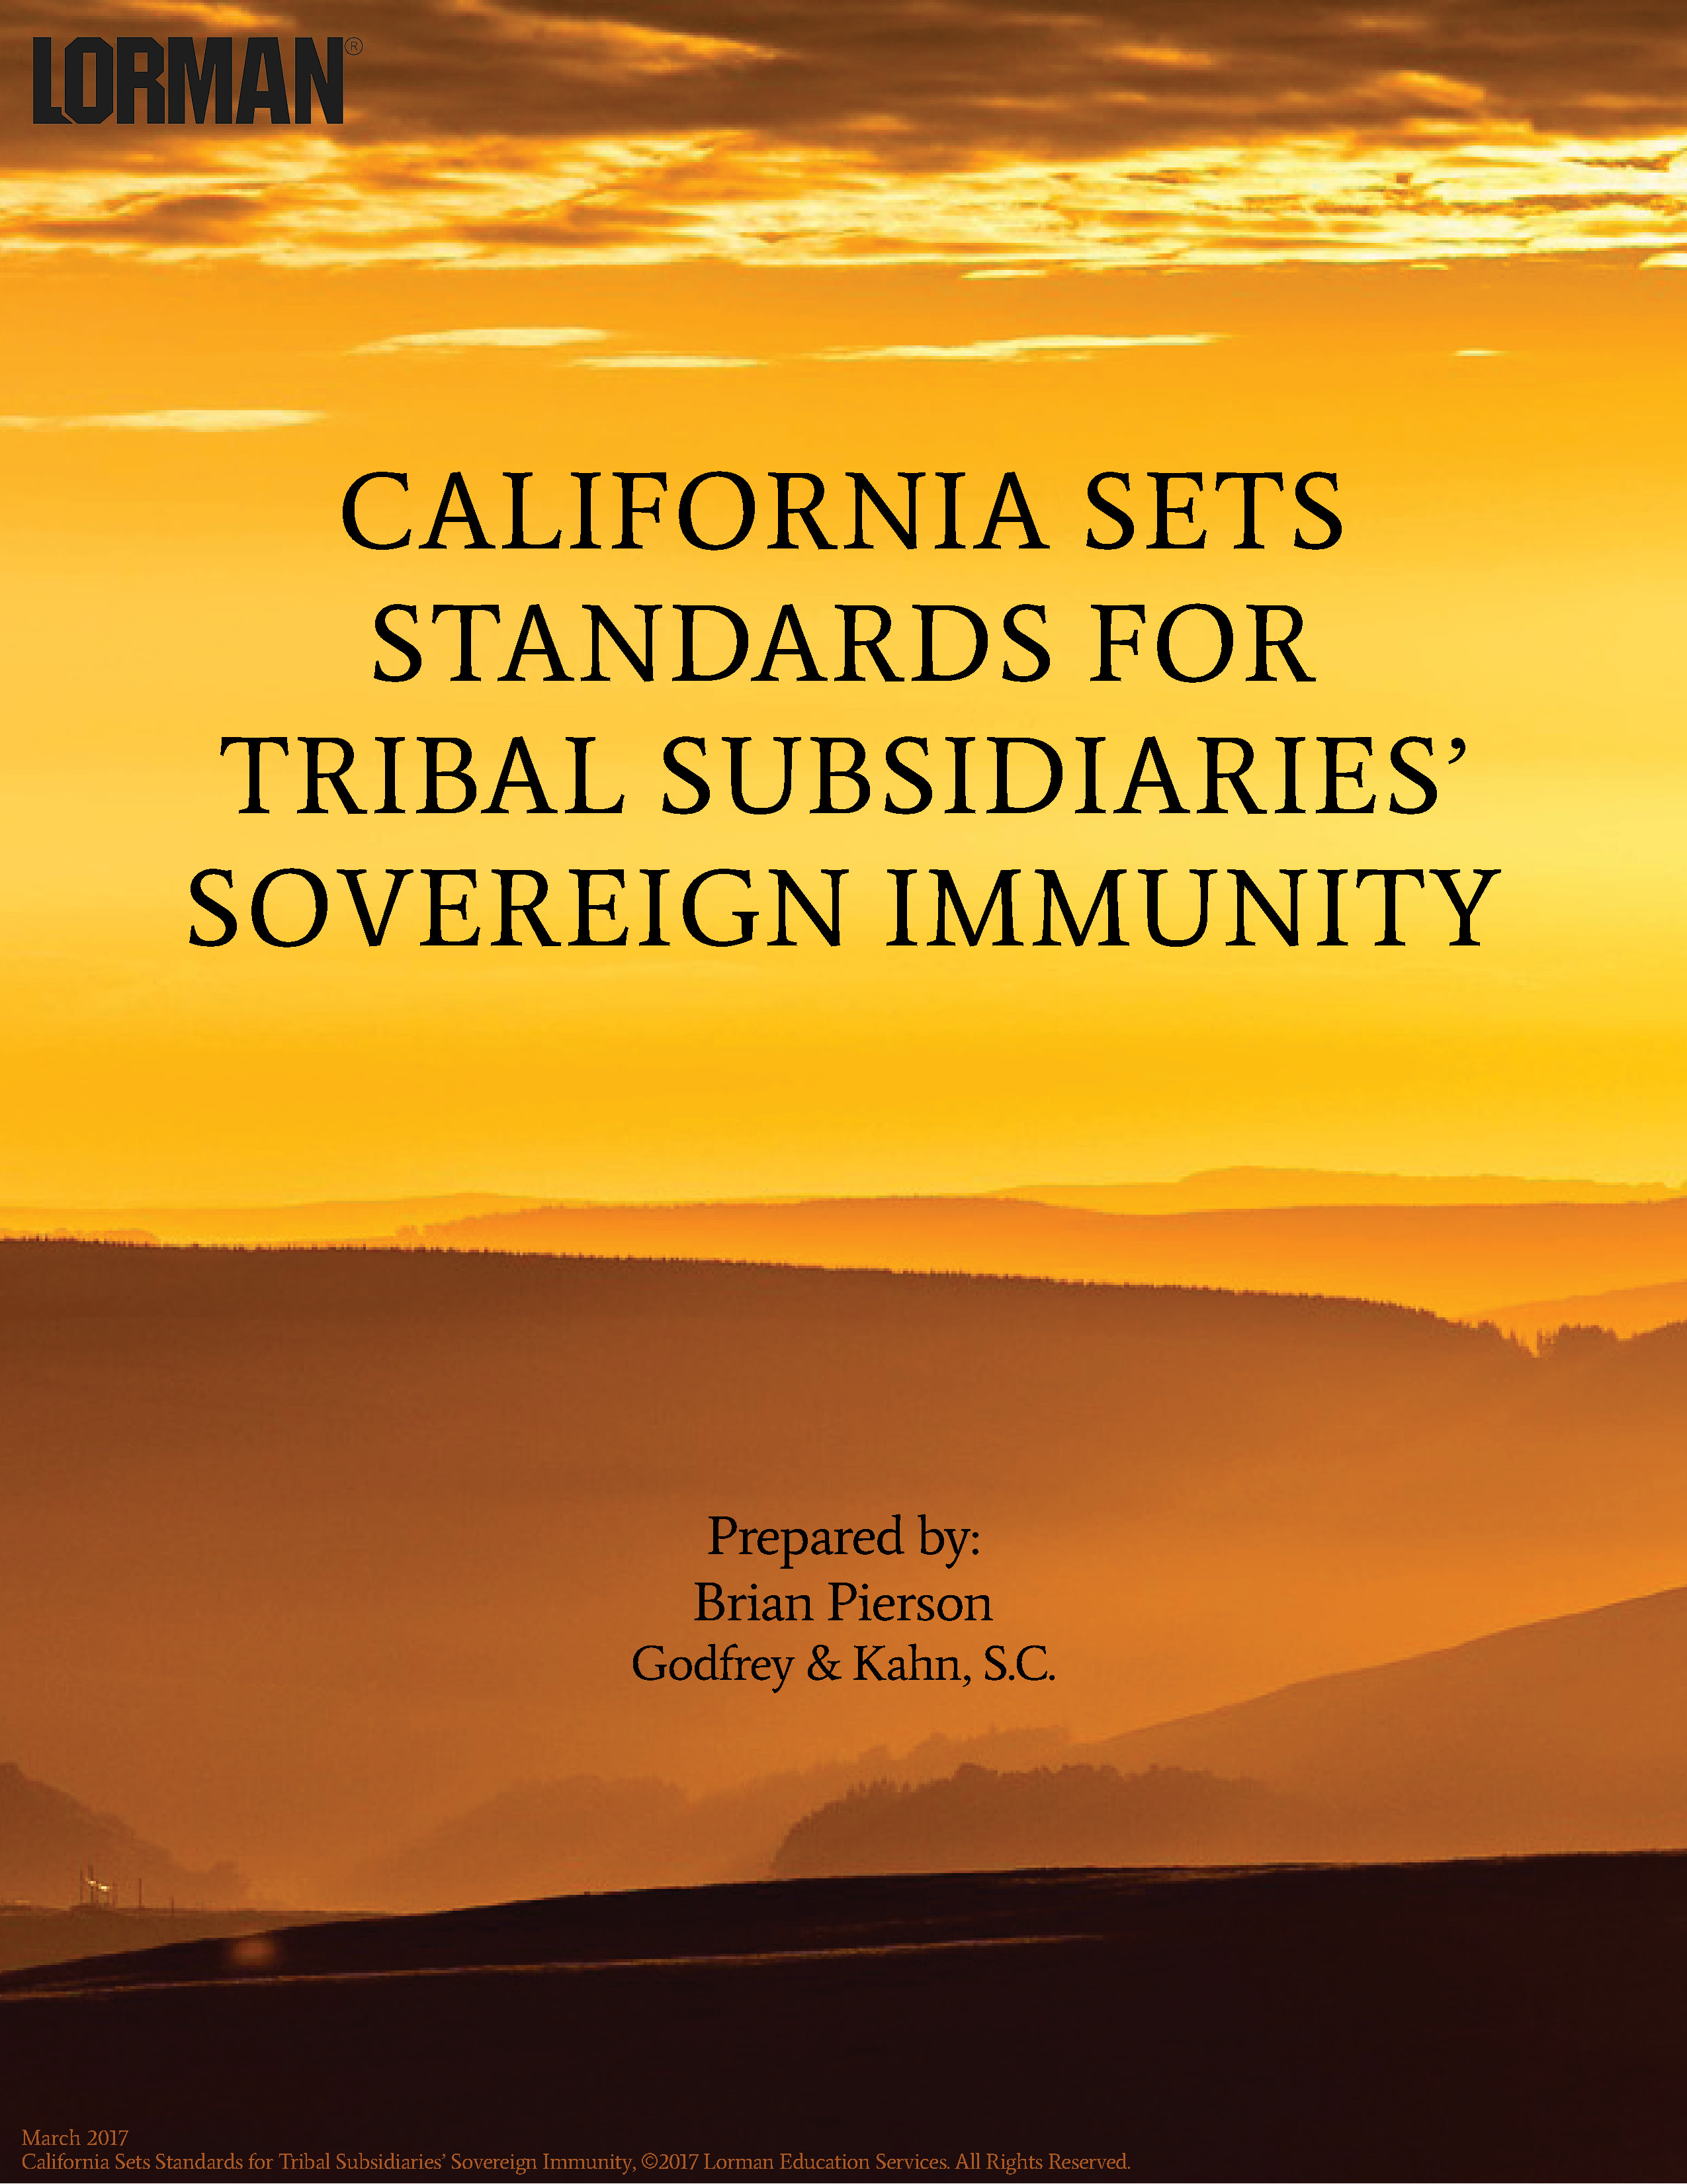 California Sets Standards for Tribal Subsidiaries' Sovereign Immunity